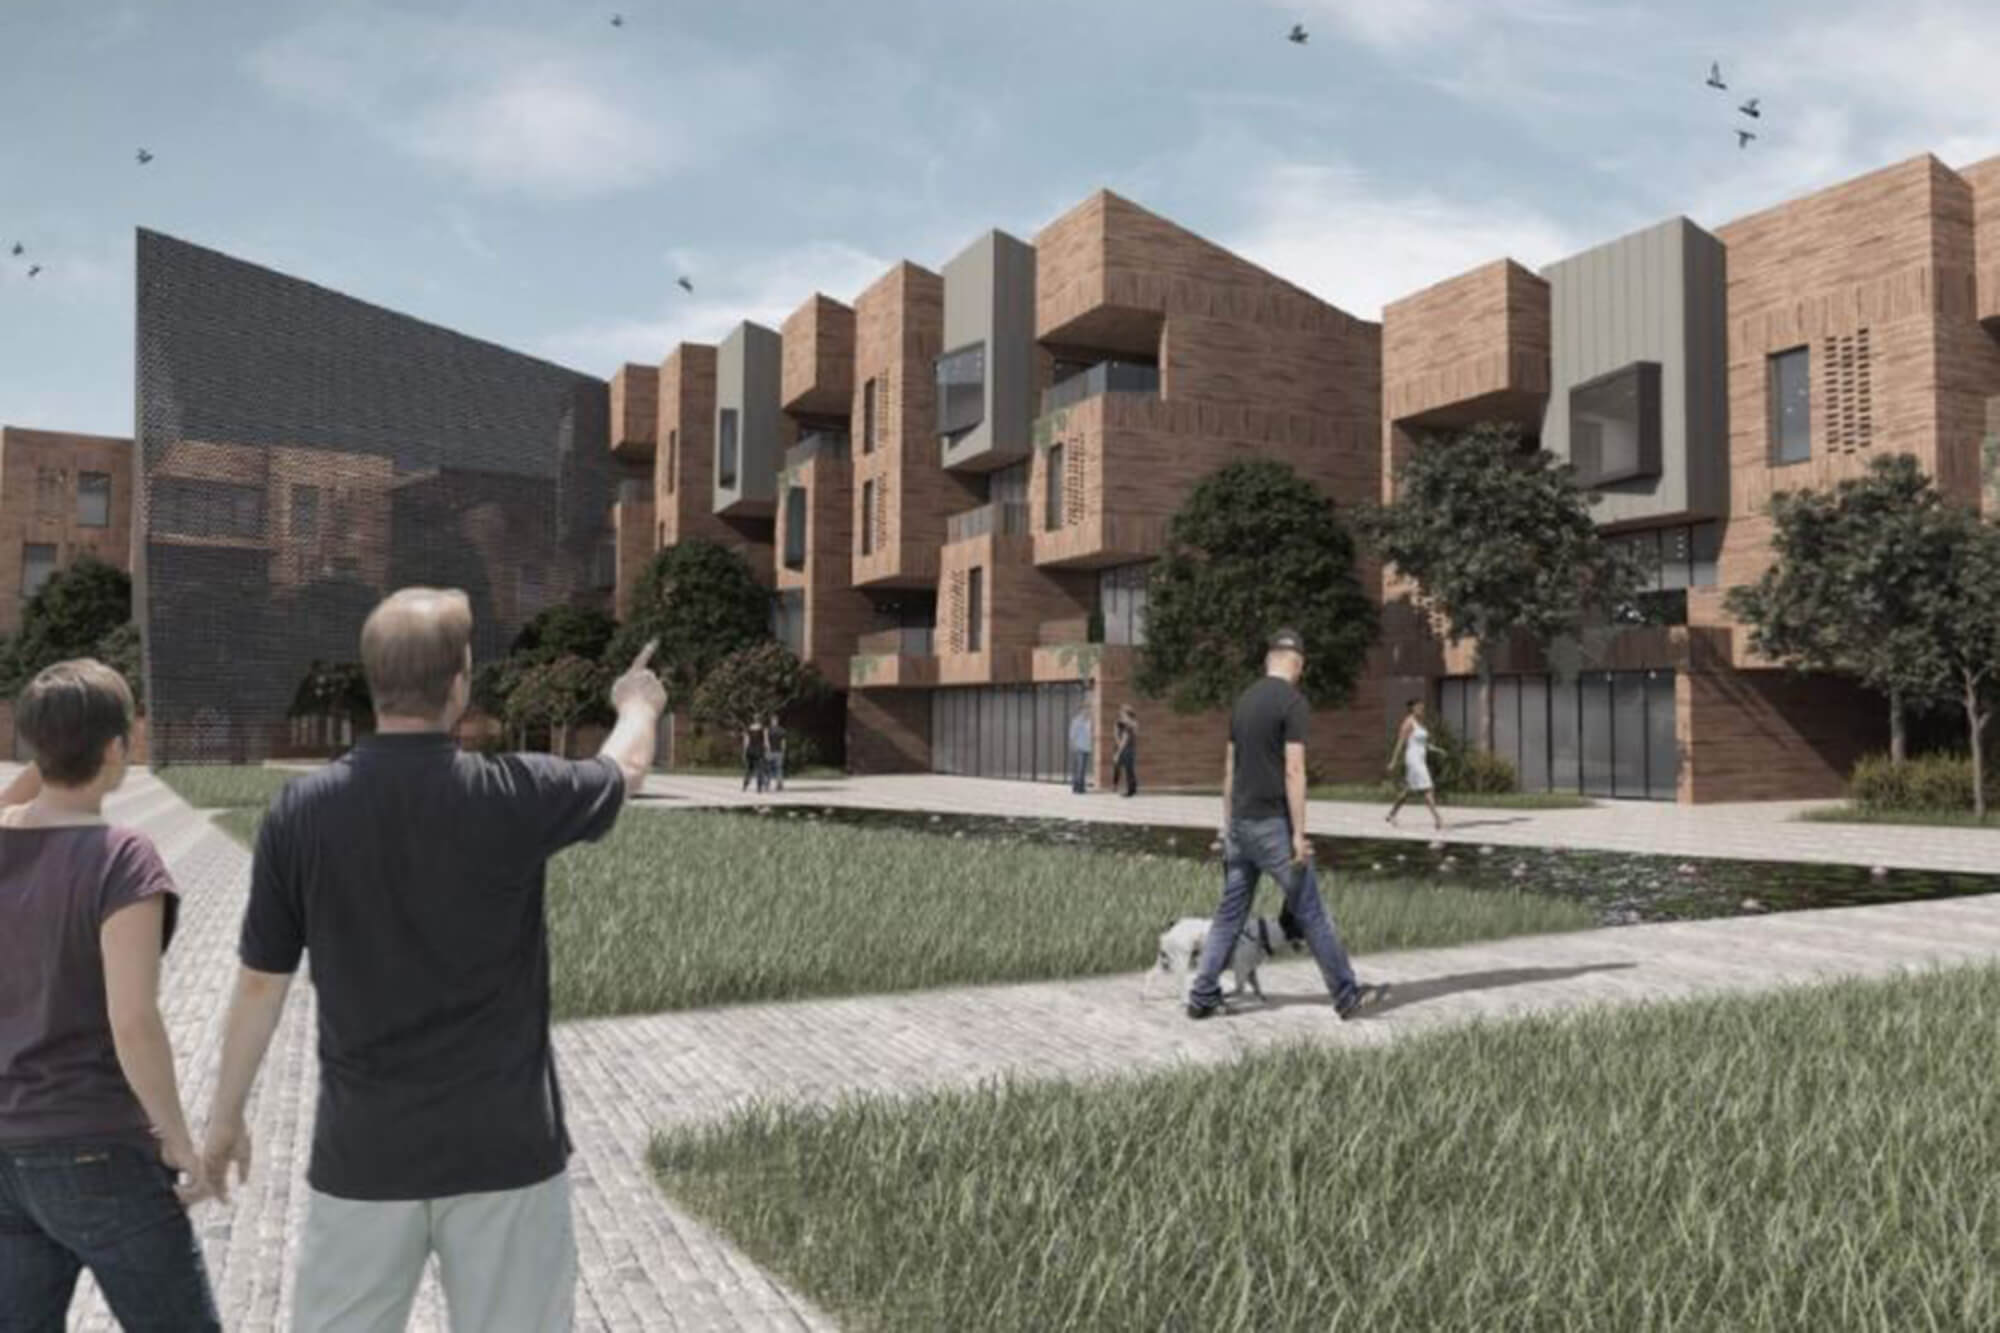 Virtual image of a building with people waking around outside